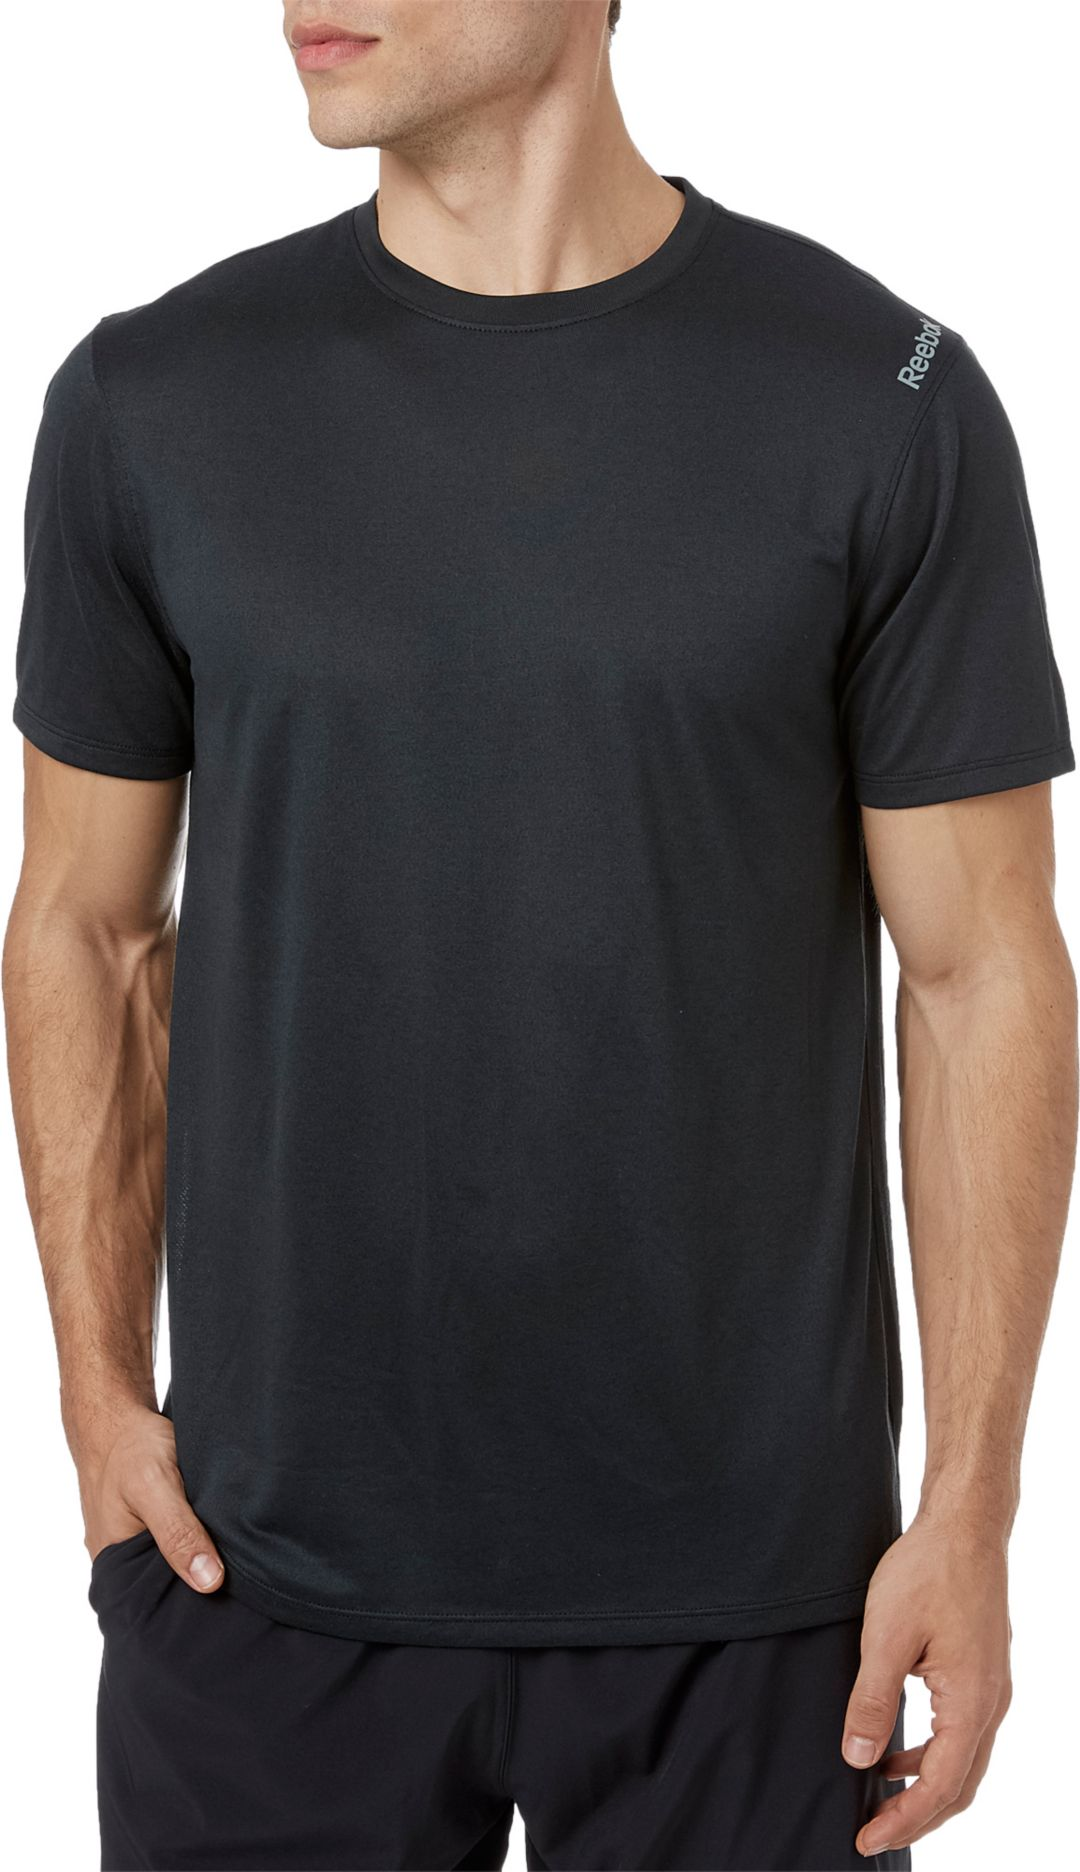 ec91d7e126 Reebok Men's Solid Performance T-Shirt